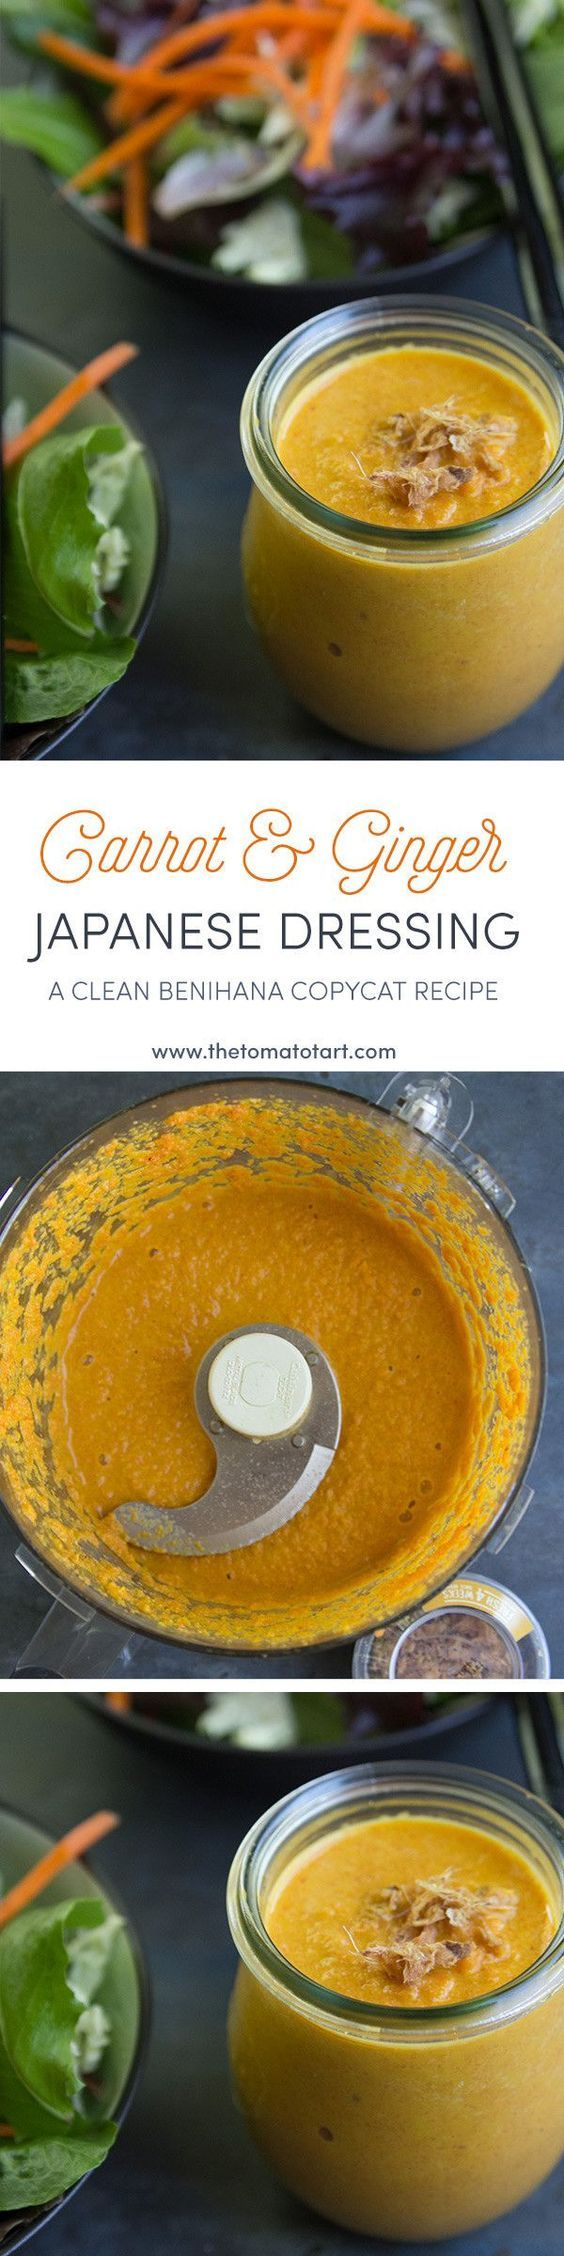 Carrot Ginger Salad Dressing - paleo option available.